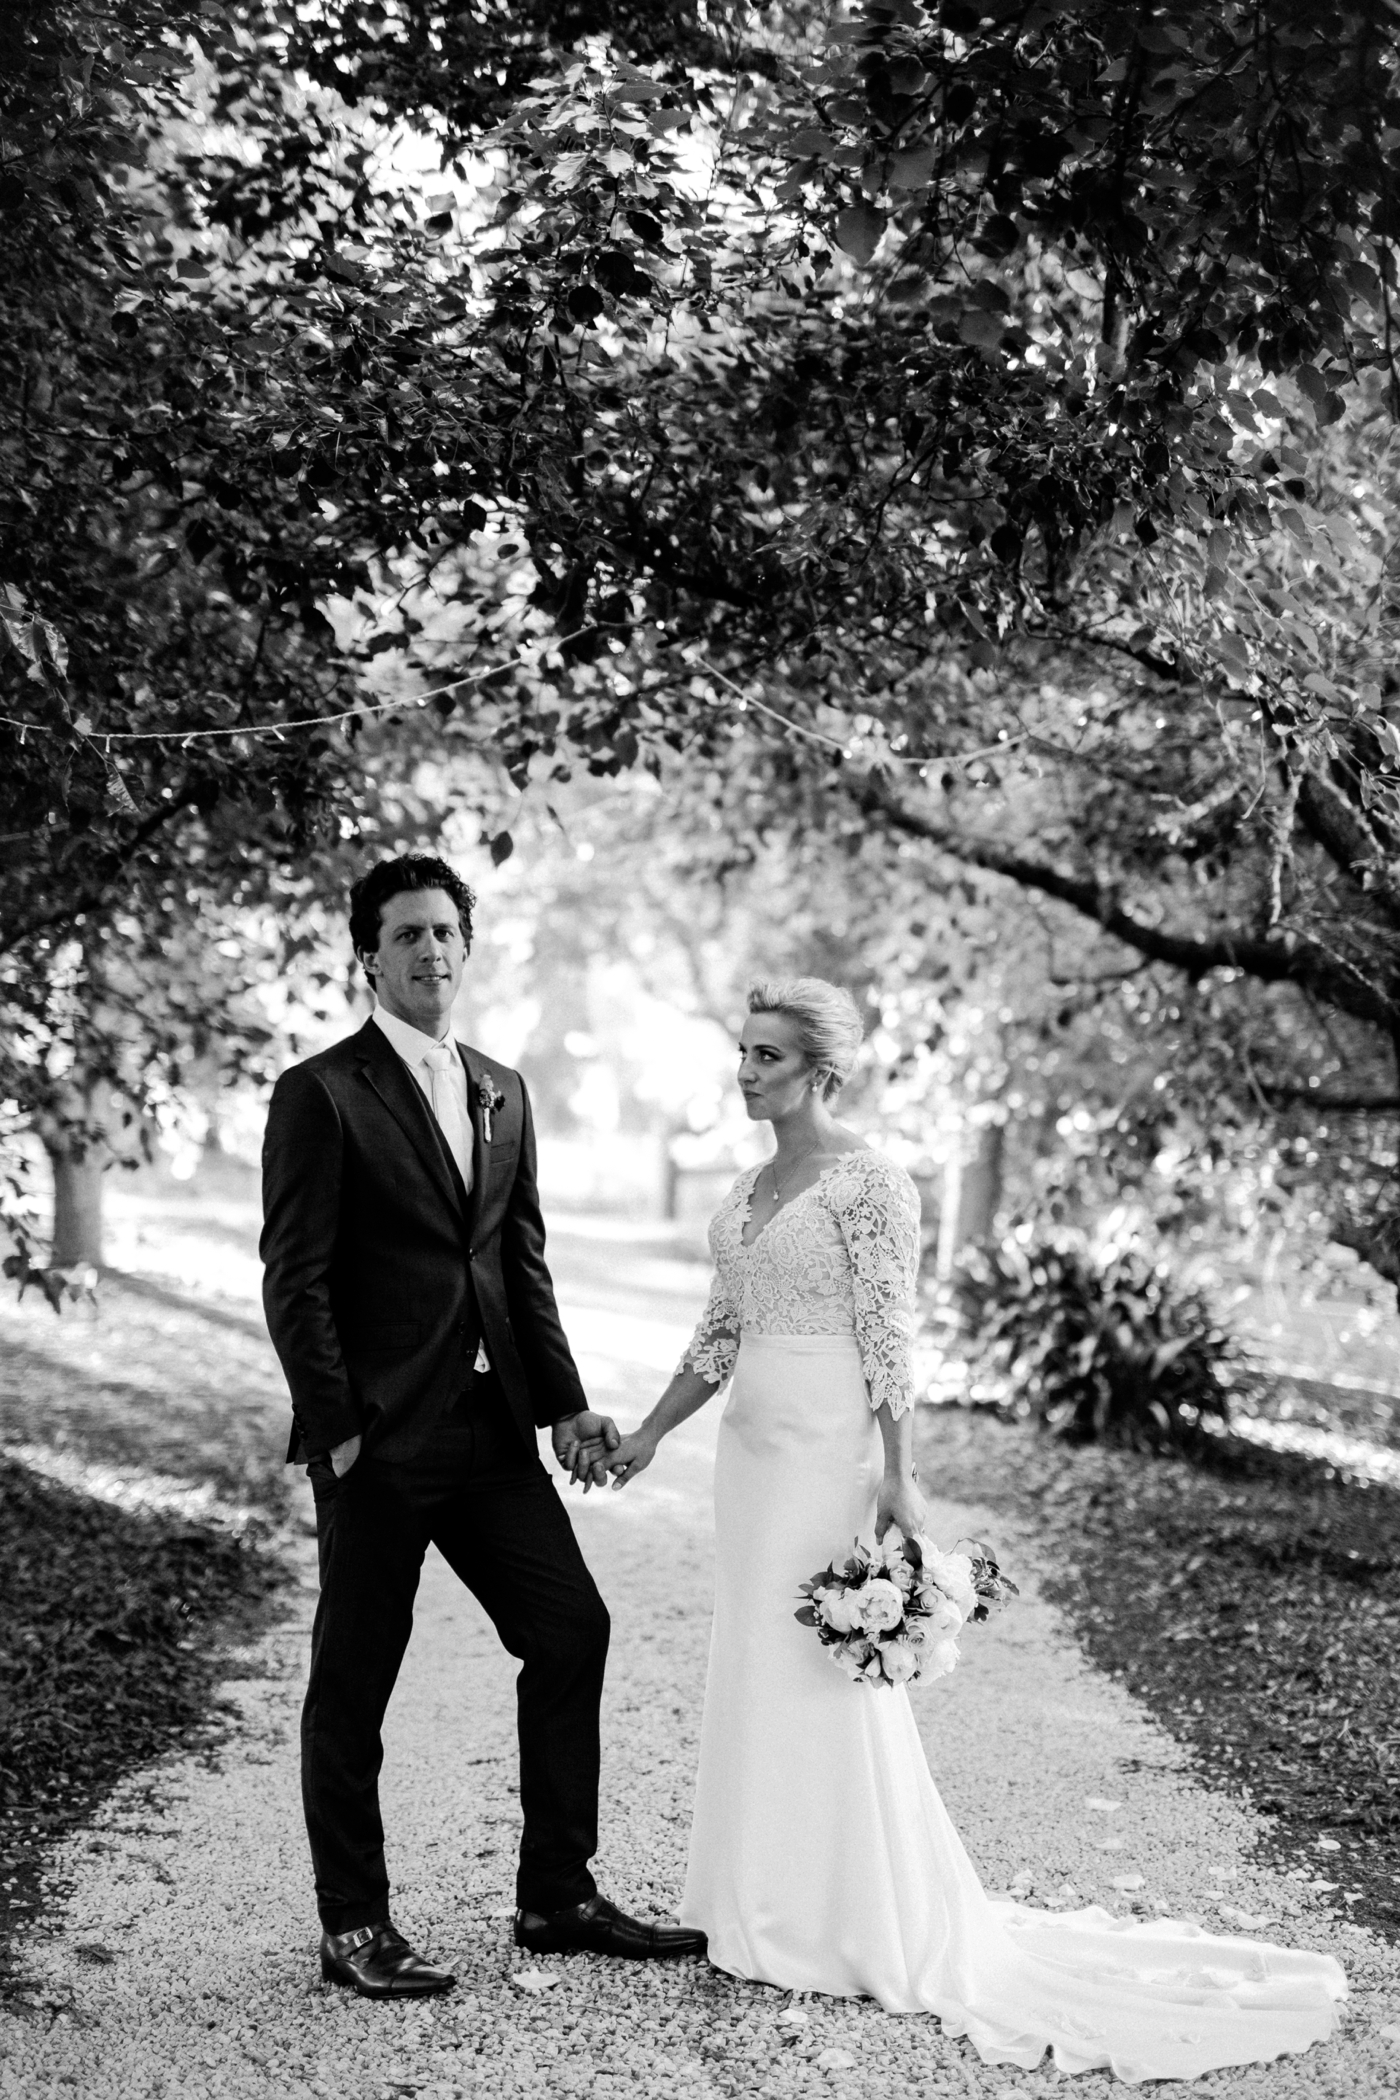 Penelope & Michael - Adelaide Hills Wedding - Natural Wedding Photography in Adelaide - Katherine Schultz www.katherineschultzphotography.com 57